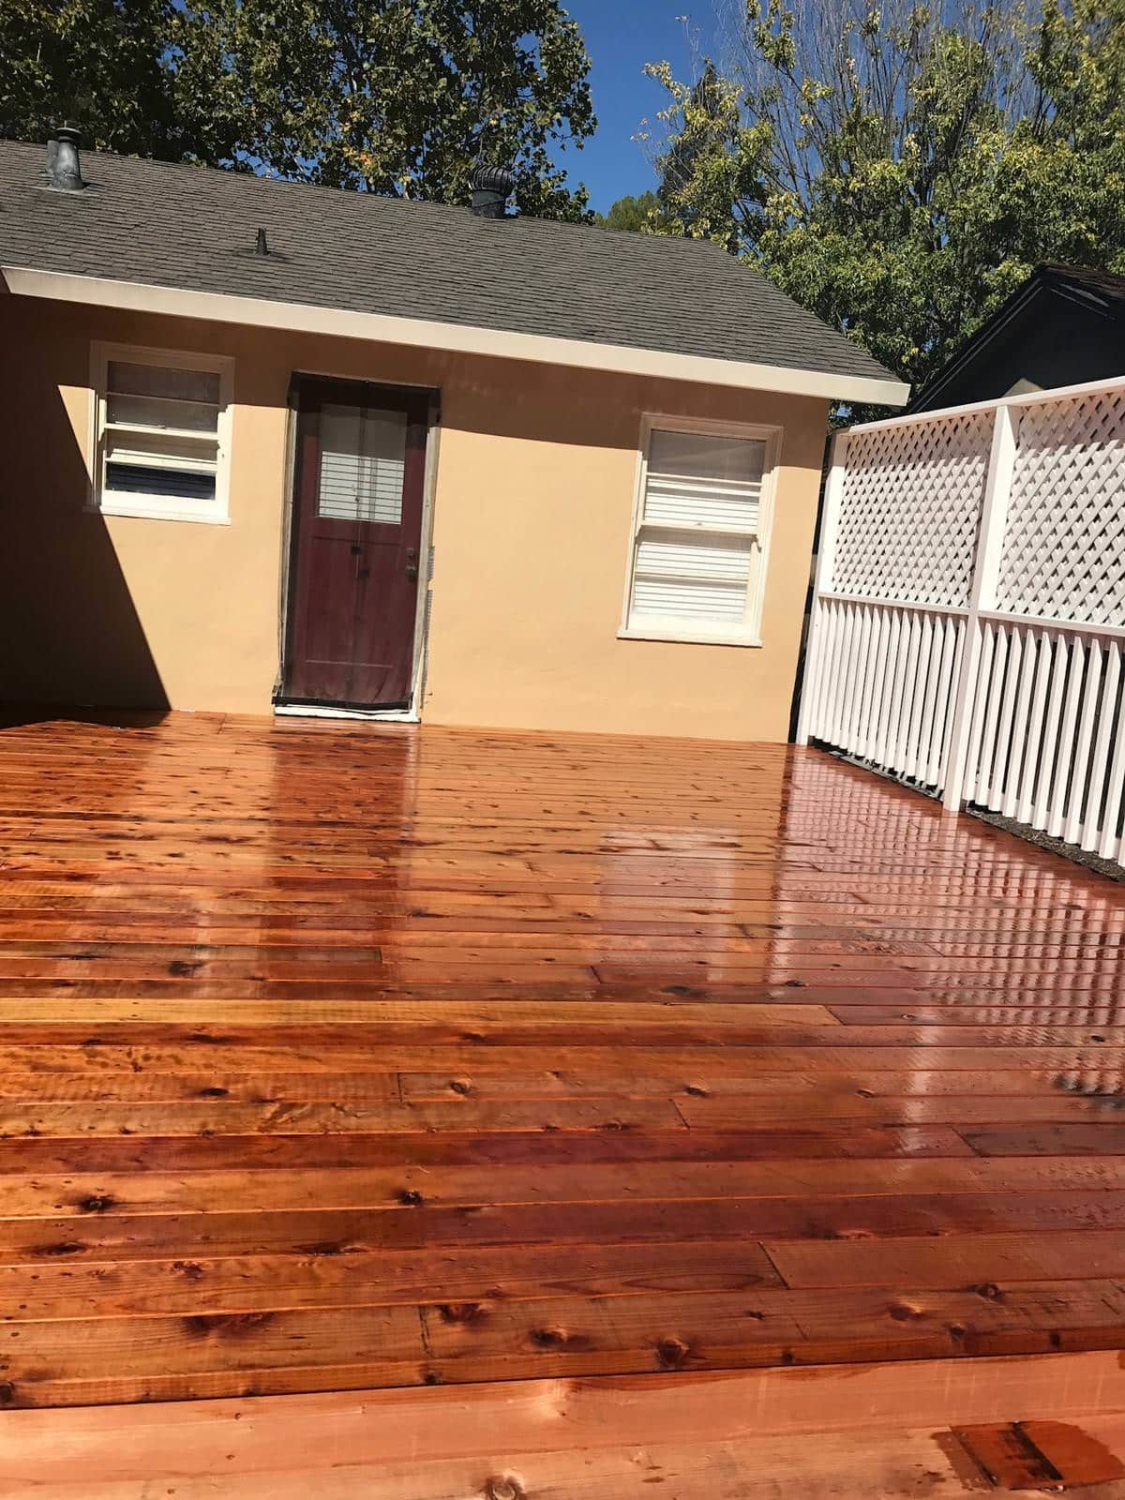 Beautiful outdoor decking by Quartz Construction in San Jose